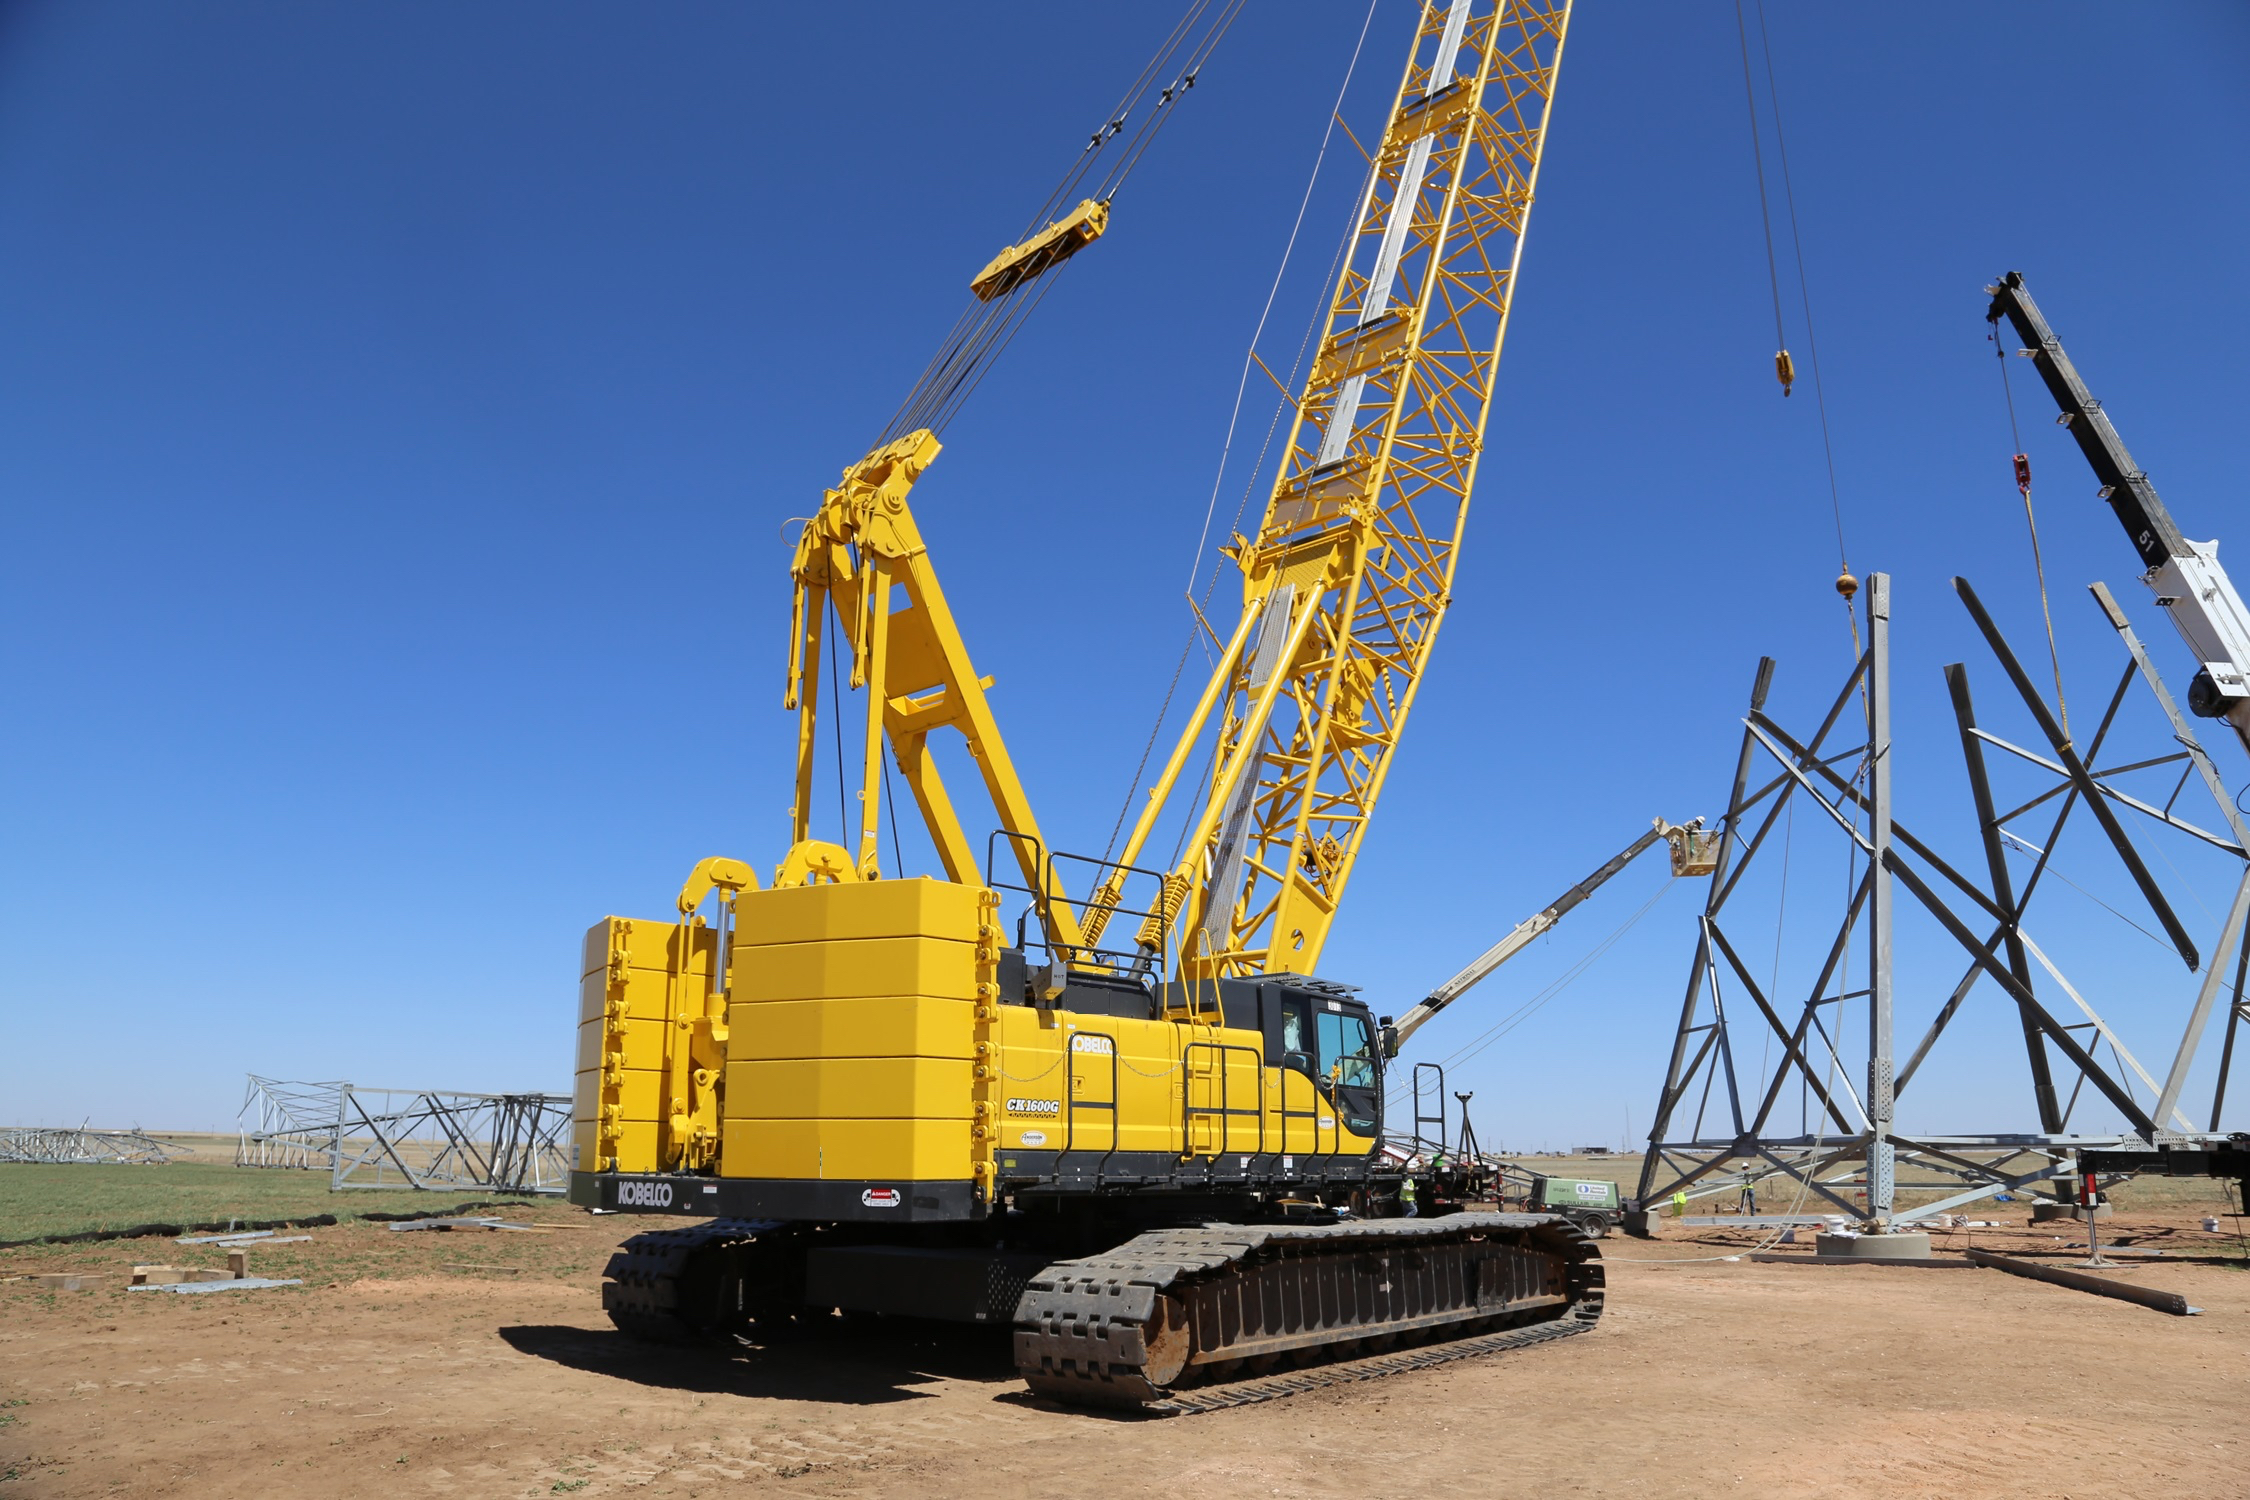 Empire Crane Company is now an Authorized Dealer for Kobelco Cranes